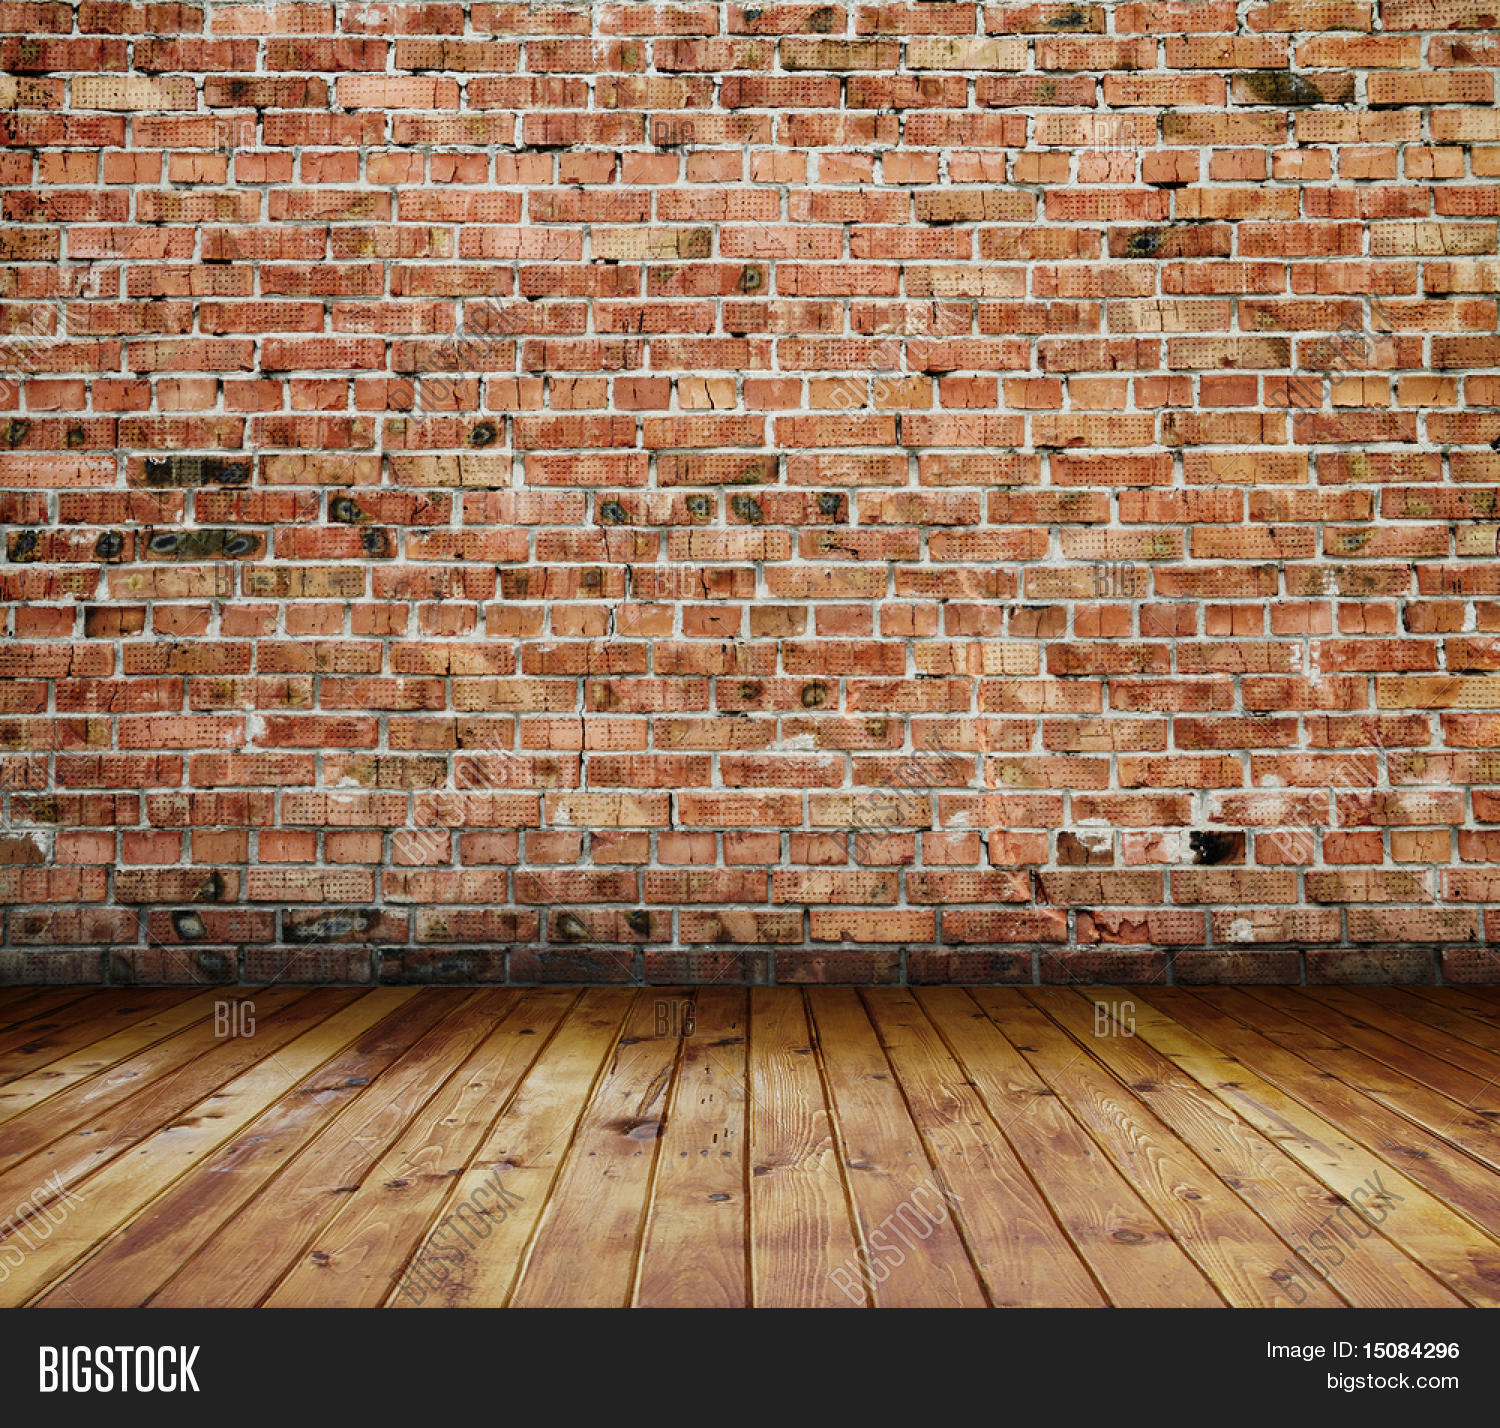 red brick facade old home wall bedroom lightbox definition houzz a le save background interior contemporary to texture salary designer grunge design